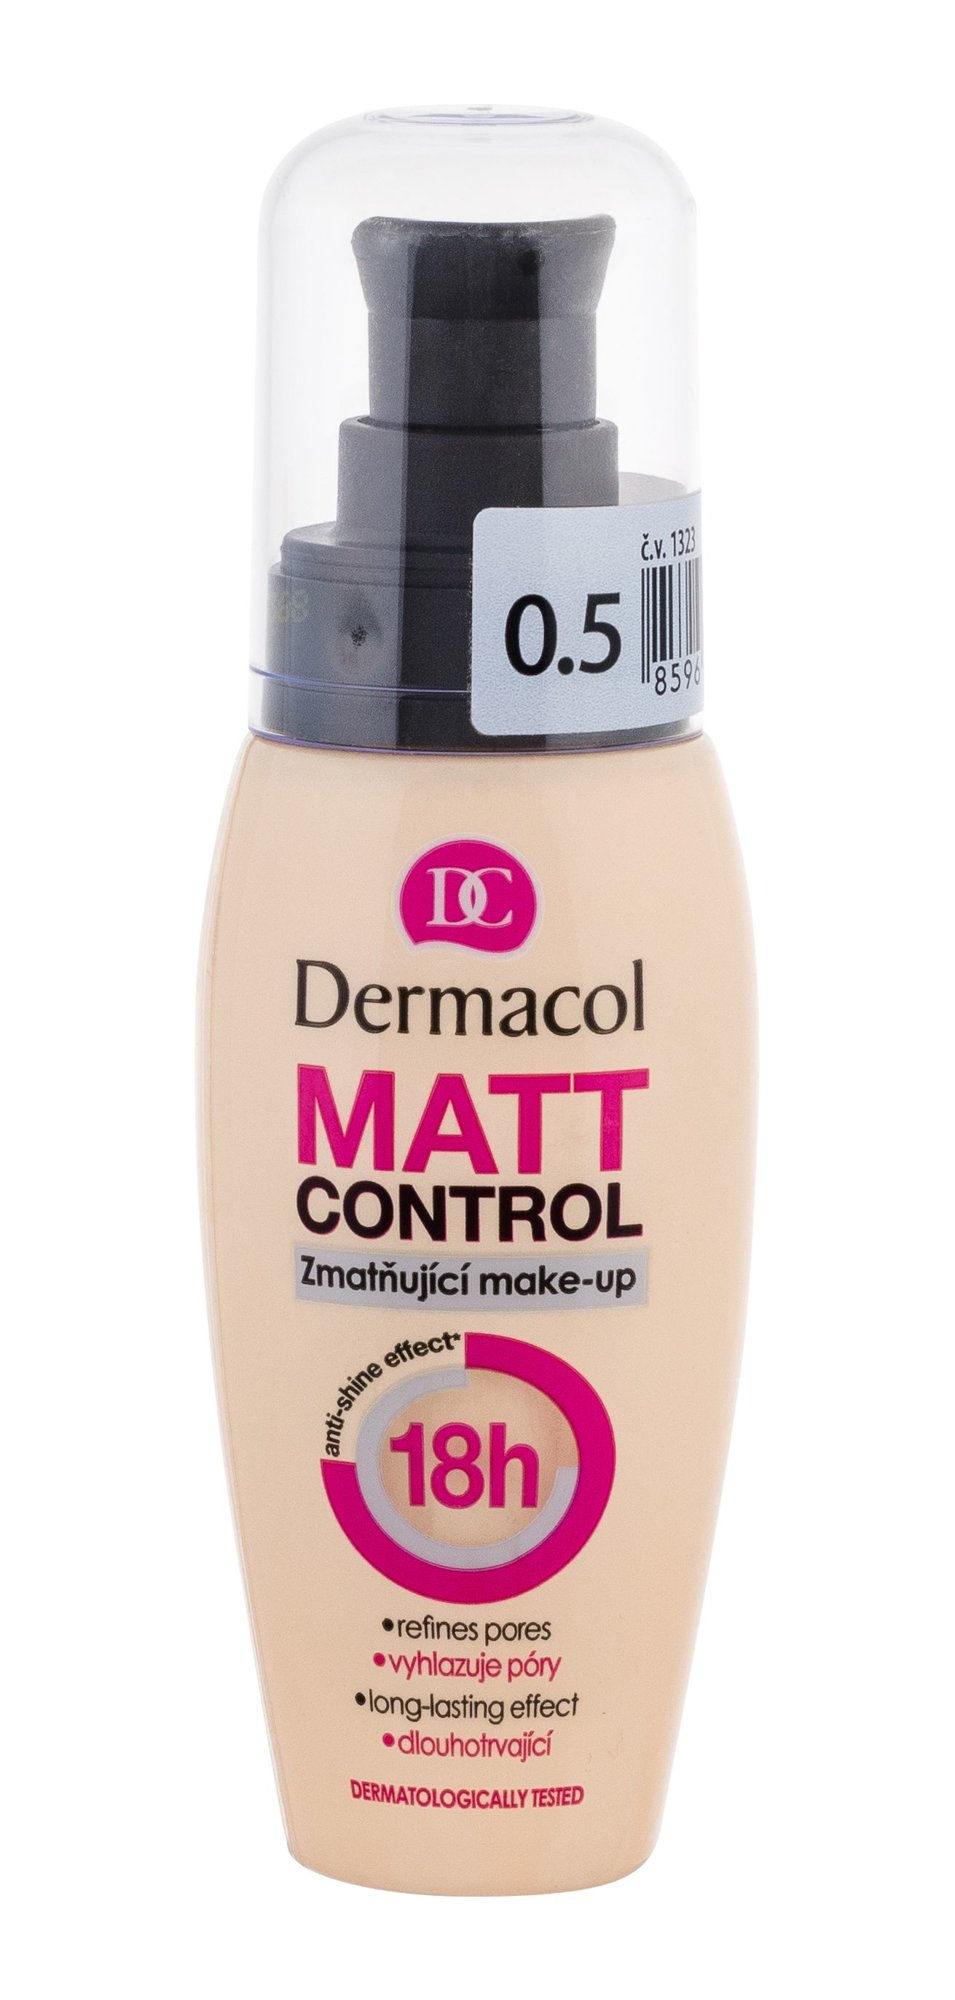 Dermacol Matt Control Makeup 30ml 0.5